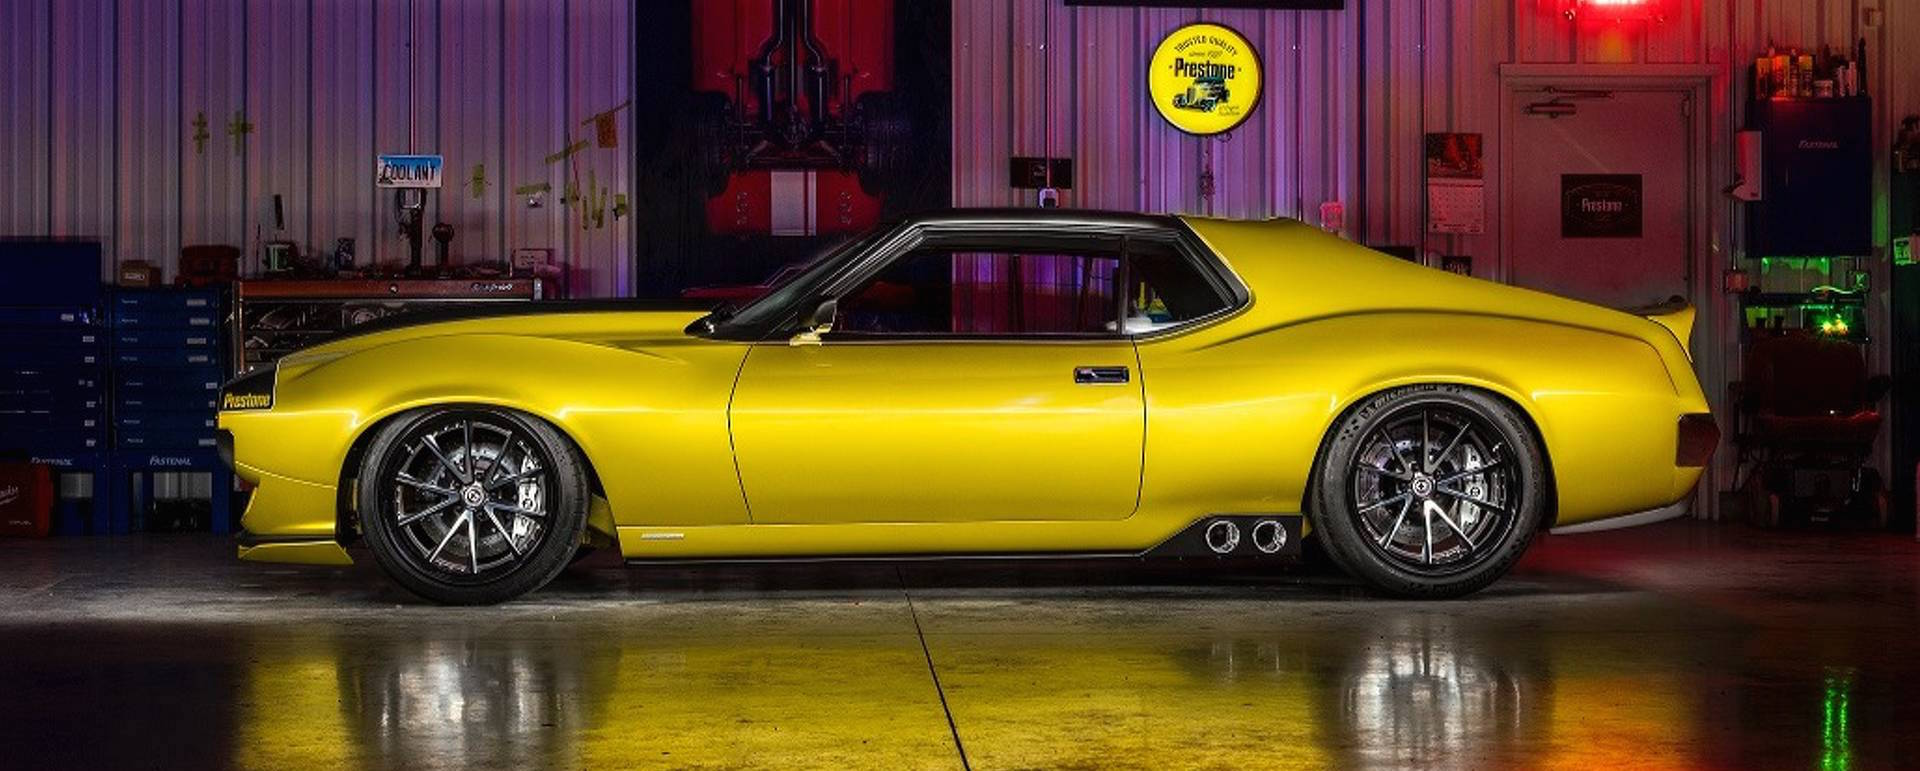 Ringbrothers Raises Hell With 1,000-HP AMC Javelin At SEMA